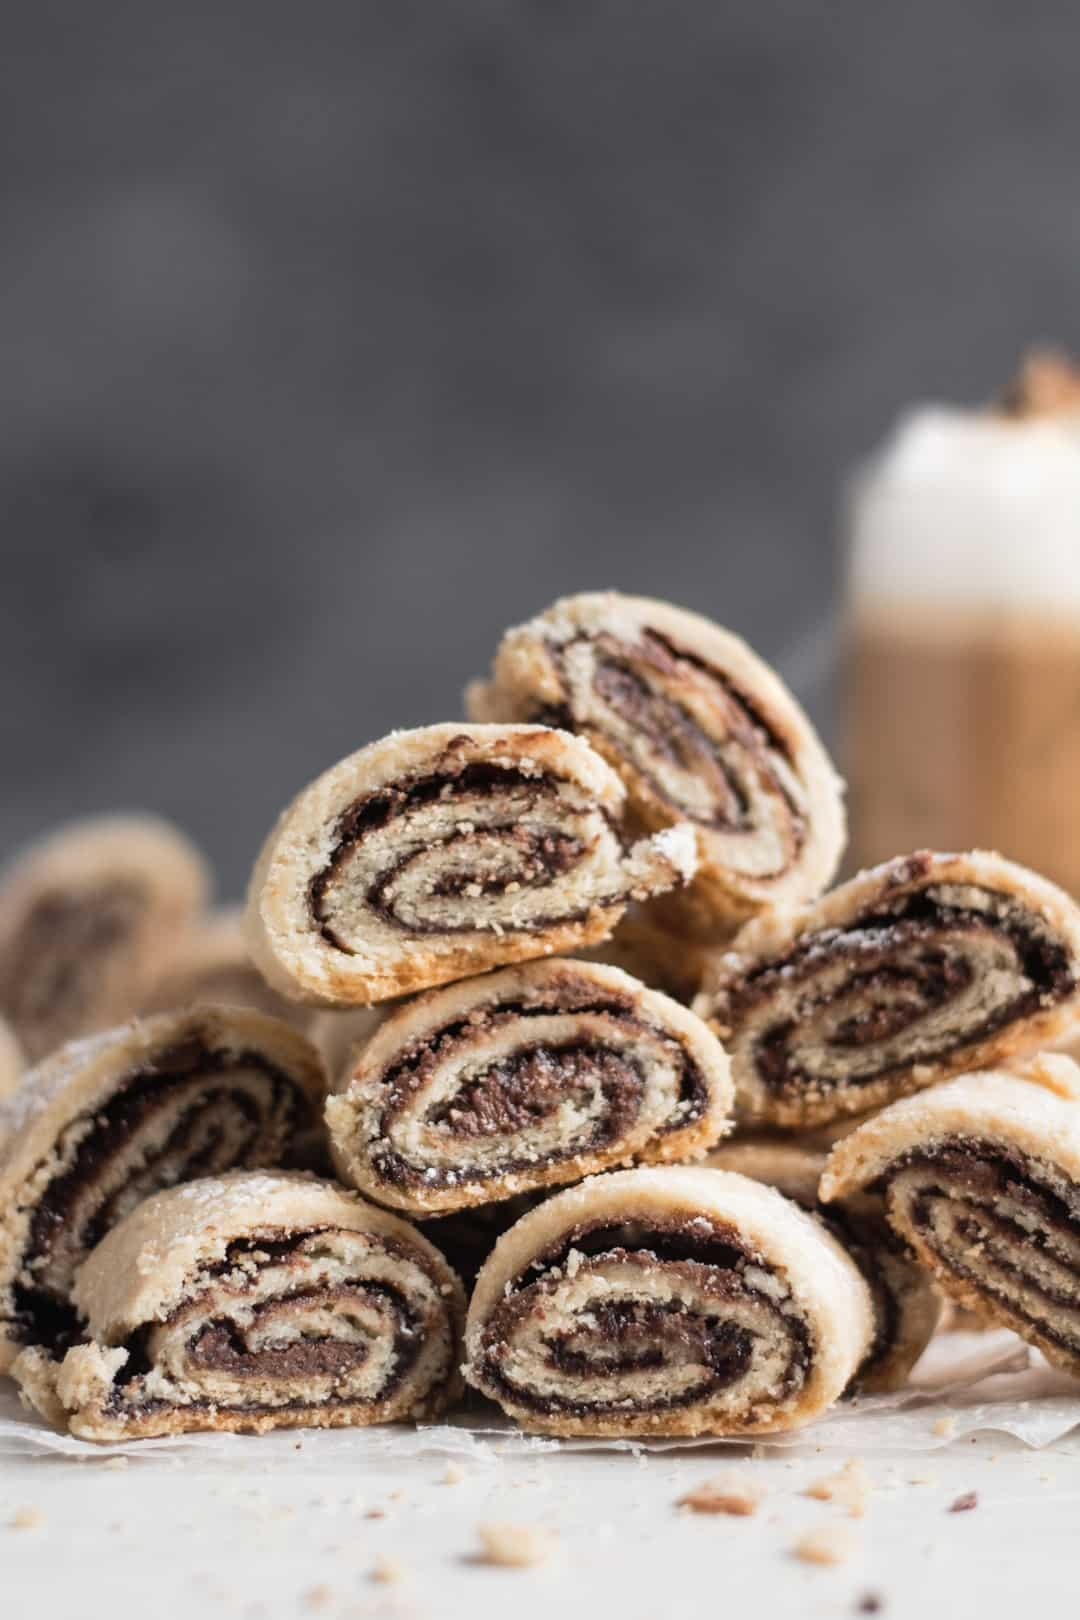 Chocolate Rolled Cookies